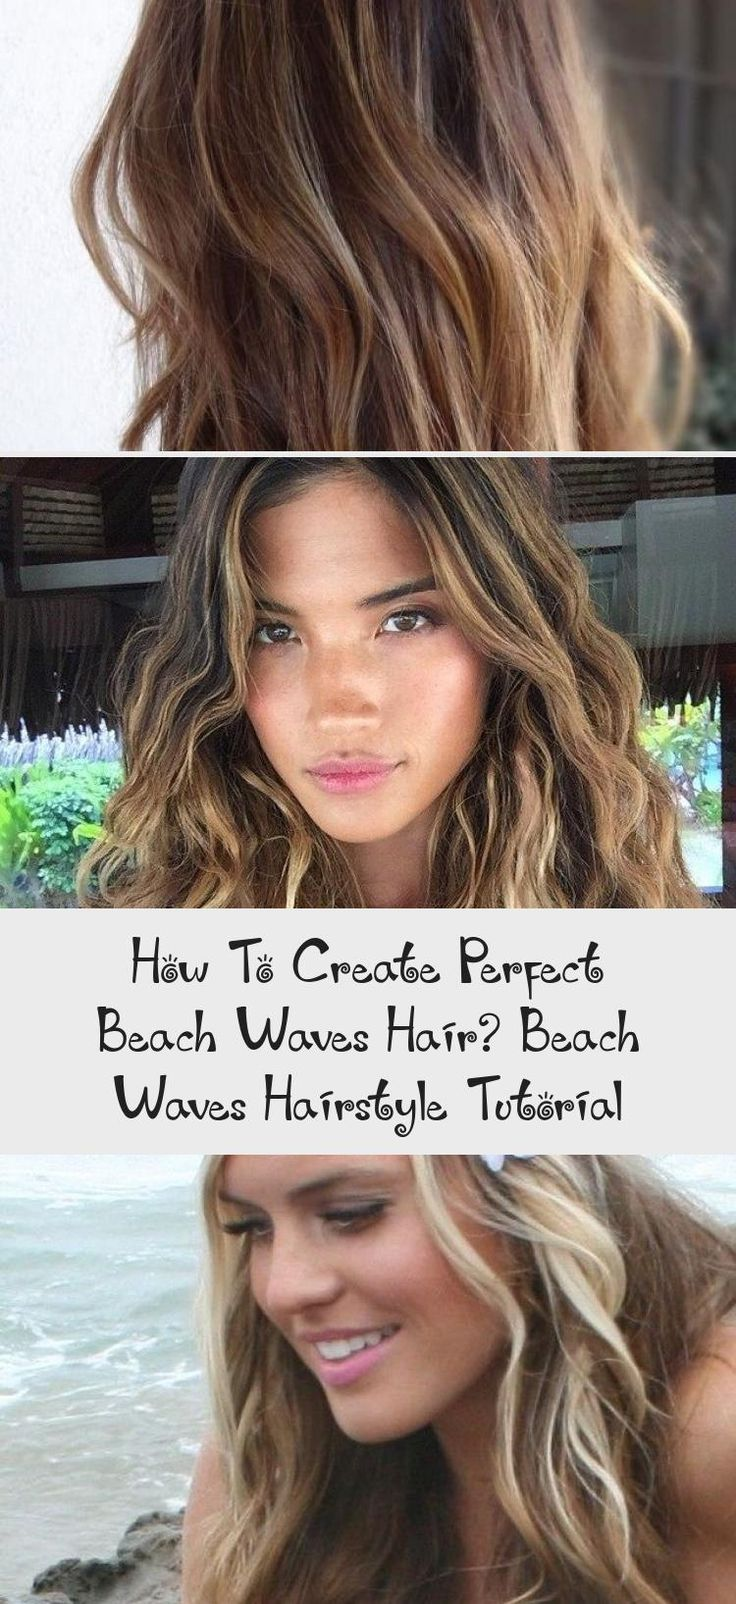 How To Create Perfect Beach Waves Hair? Beach Waves Hairstyle Tutorial | Beach wave hair, Beach ...